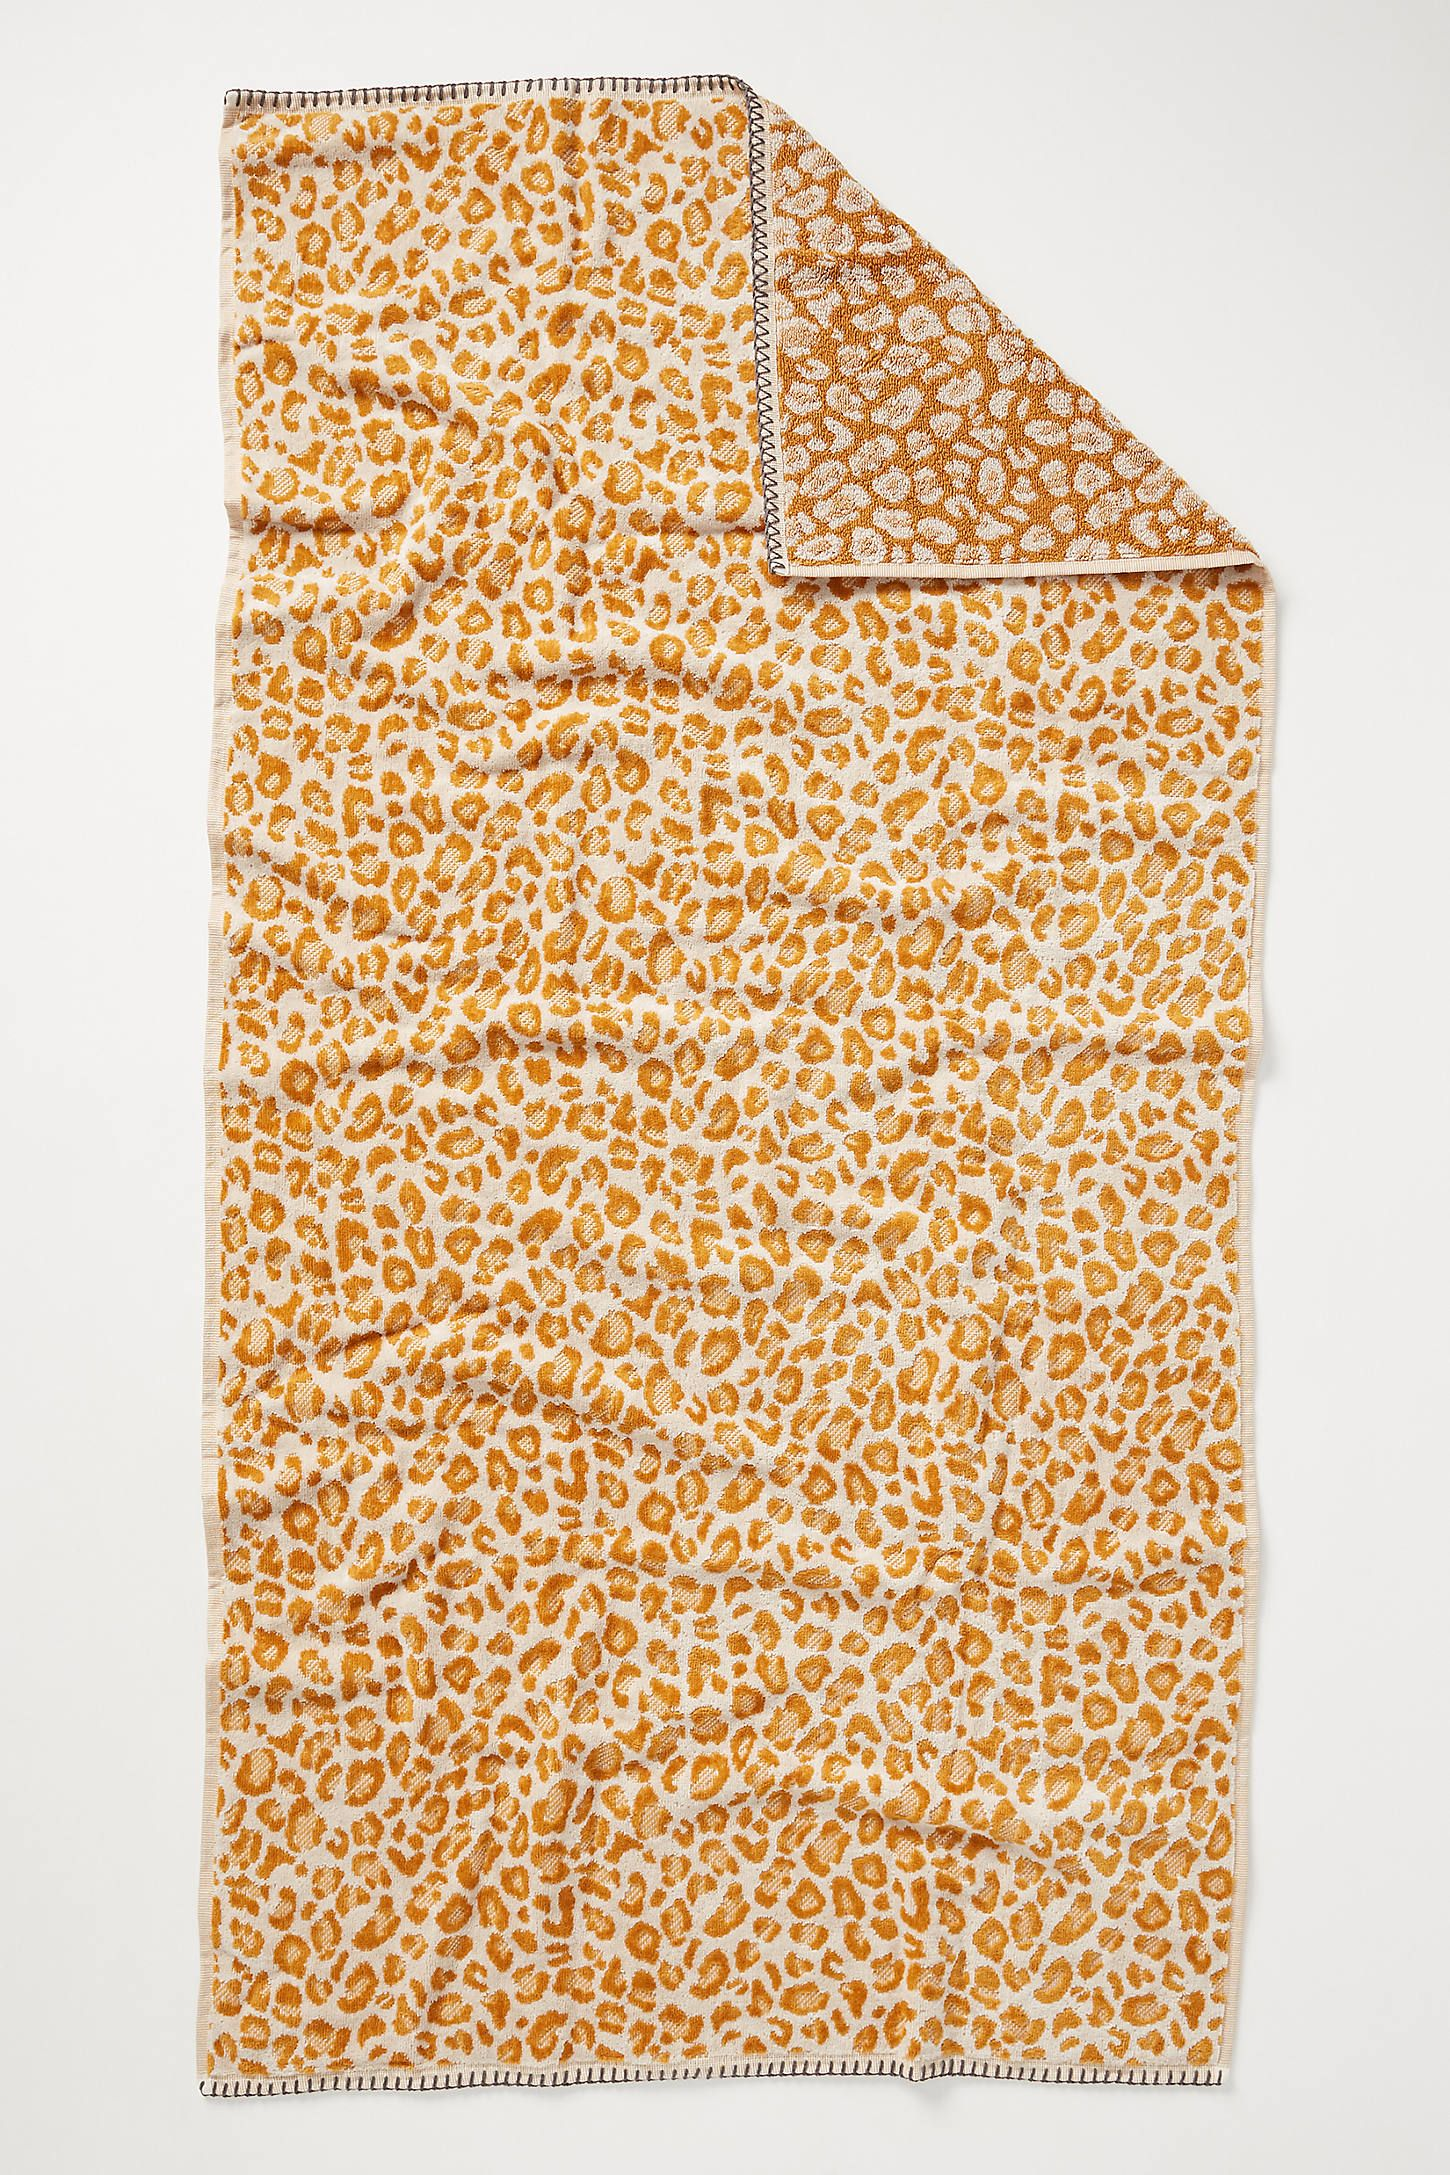 Lola Leopard Towel Collection With Images Towel Collection Anthropologie Towels